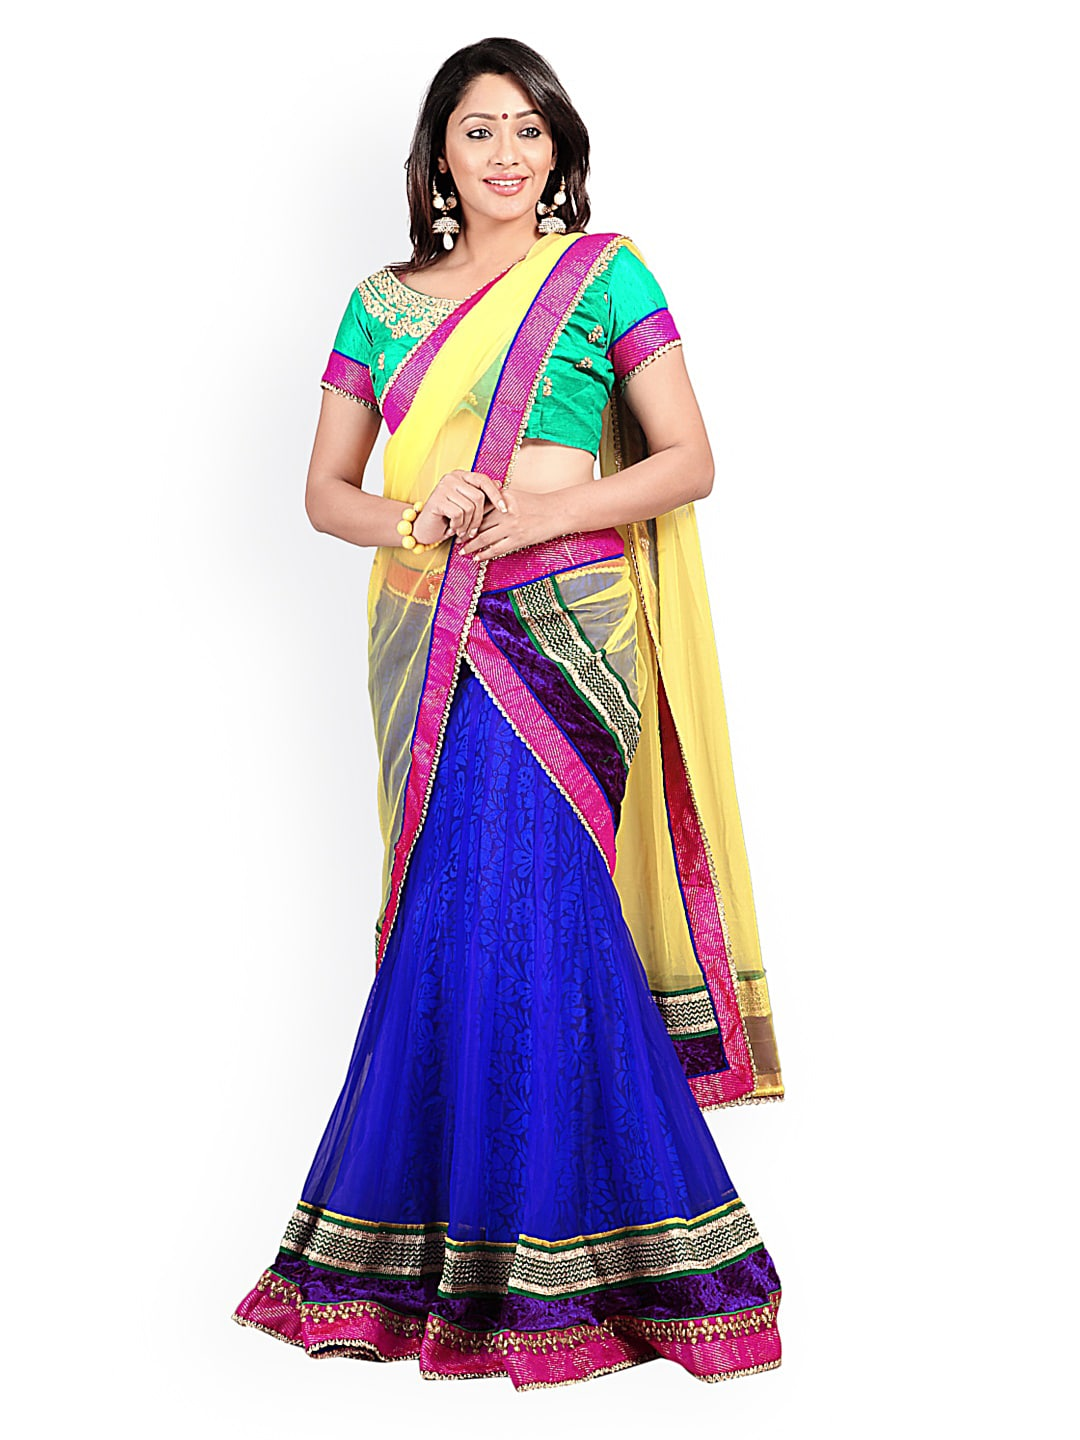 Florence Blue & Green Net & Brasso Semi-Stitched Lehenga Choli Material with Dupatta